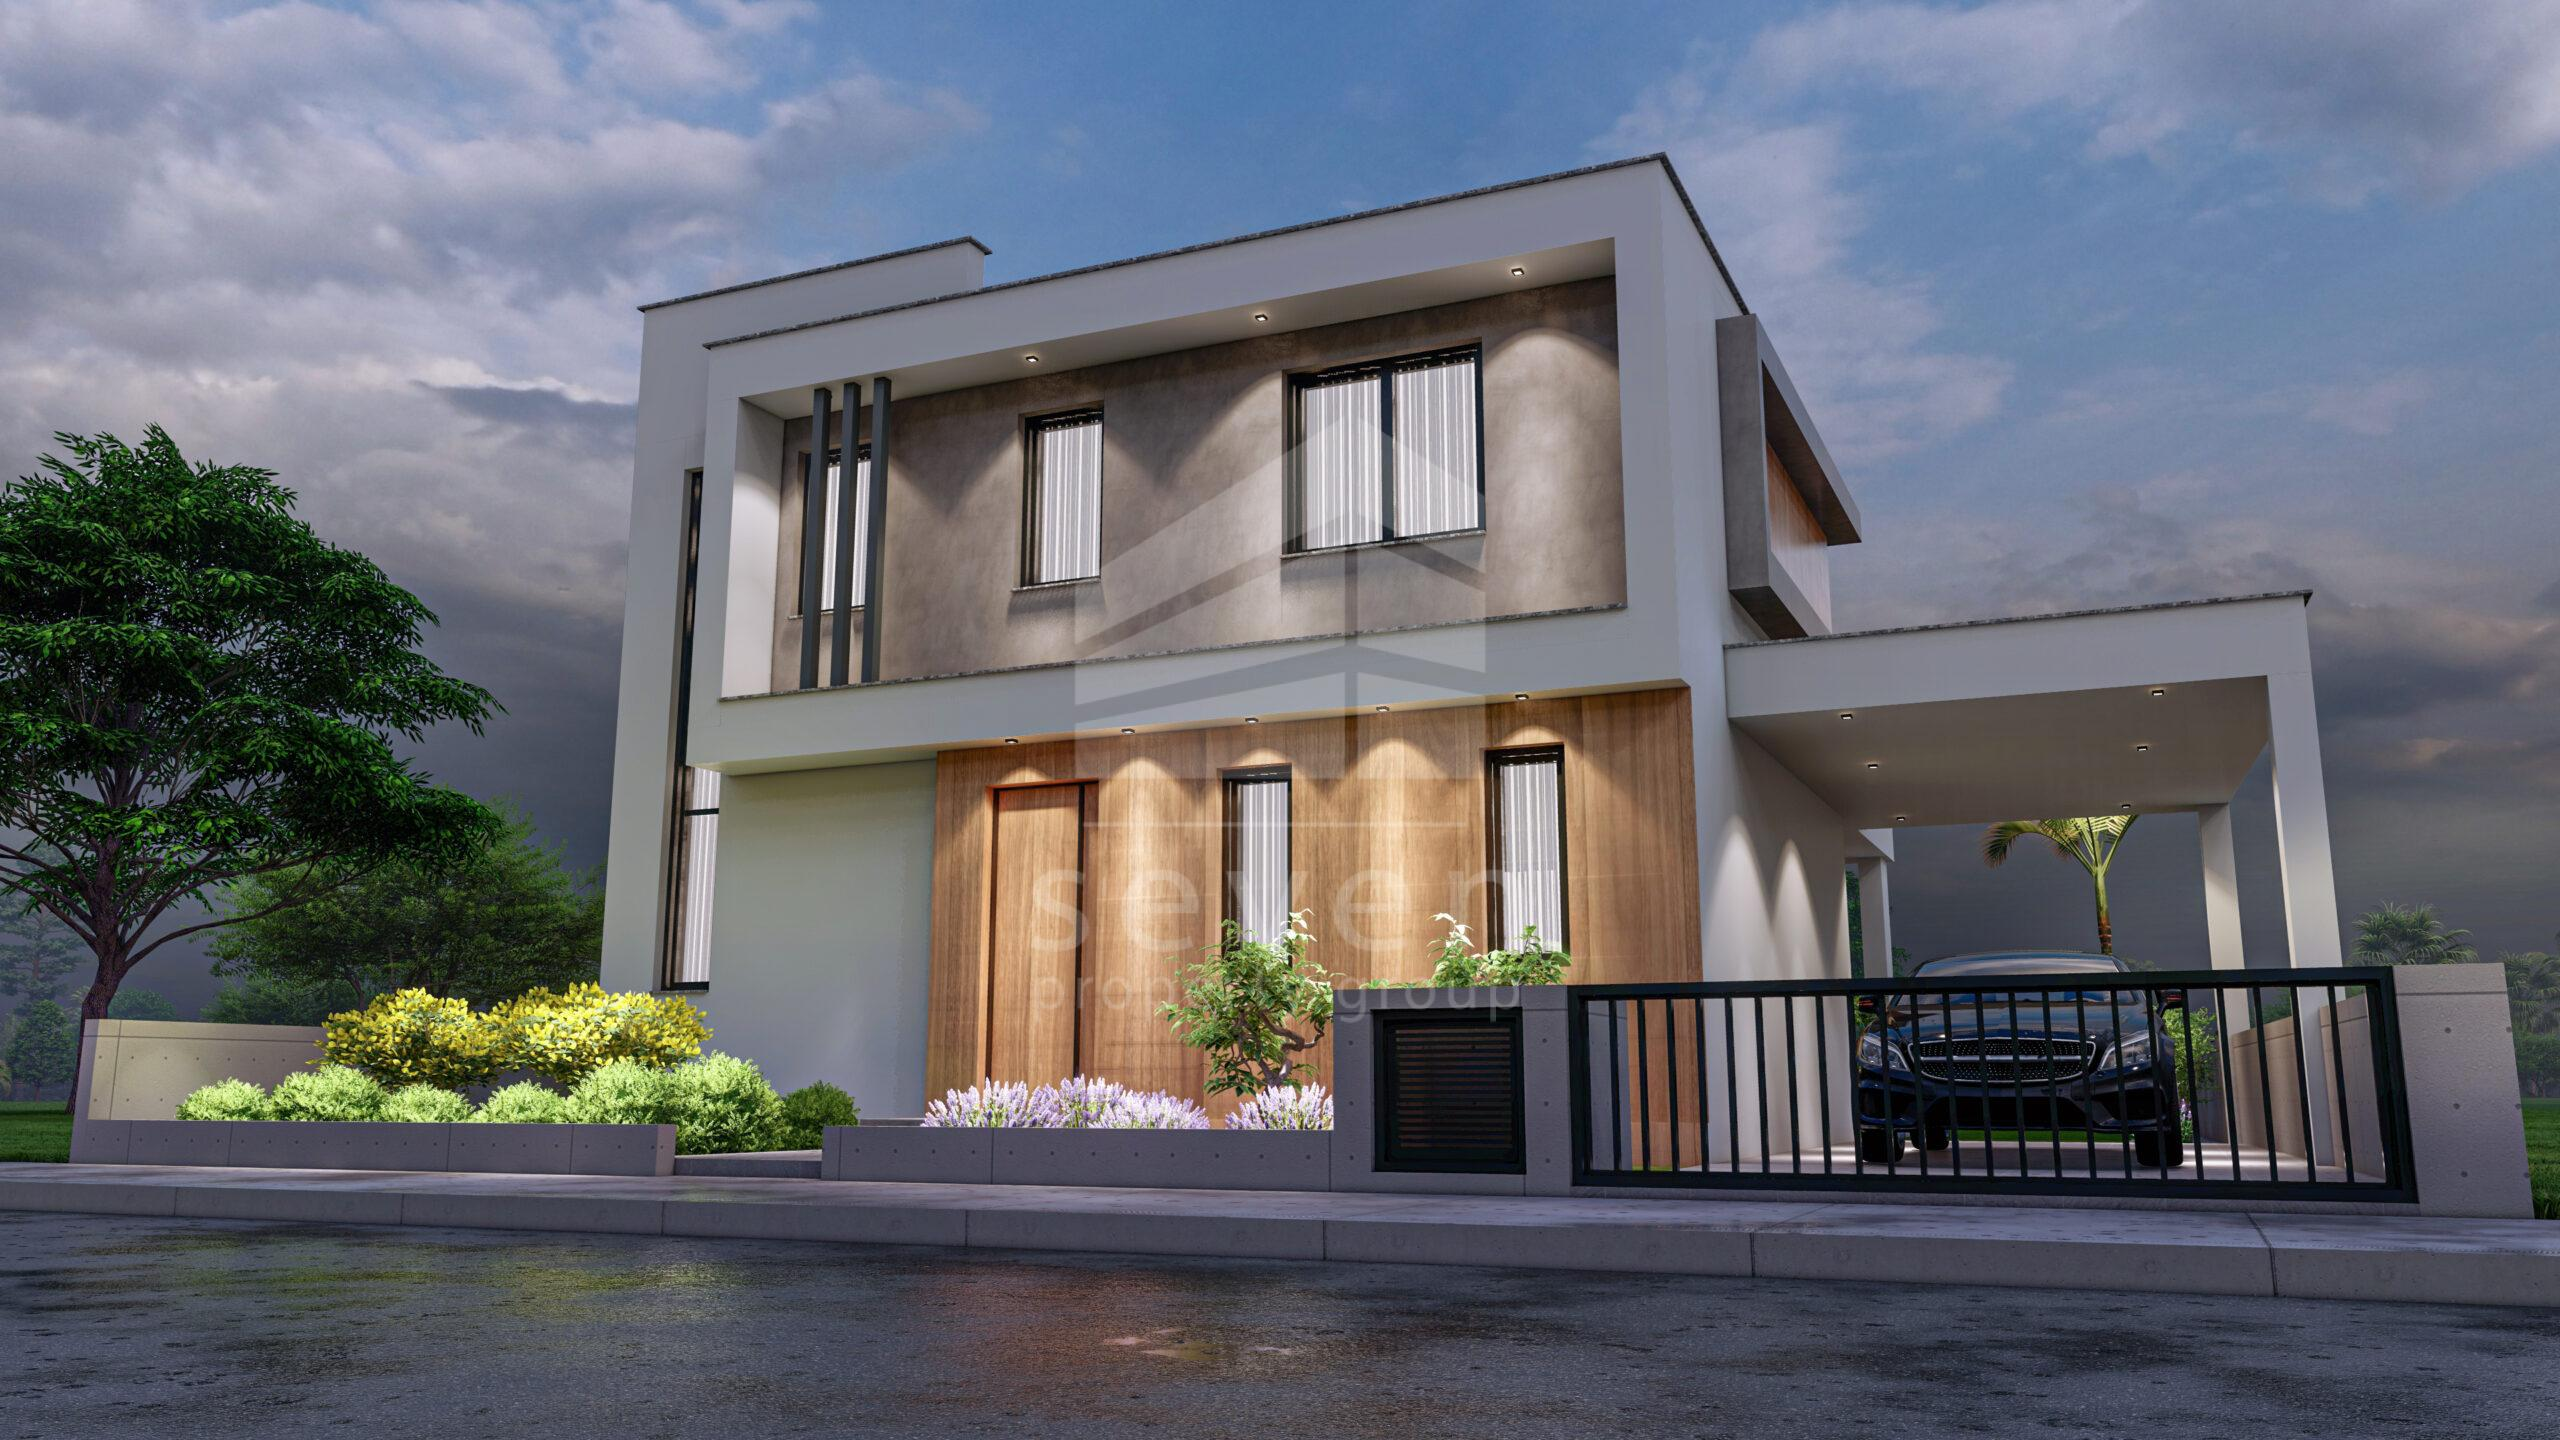 3 BED HOUSE FOR SALE IN ARADIPPOU